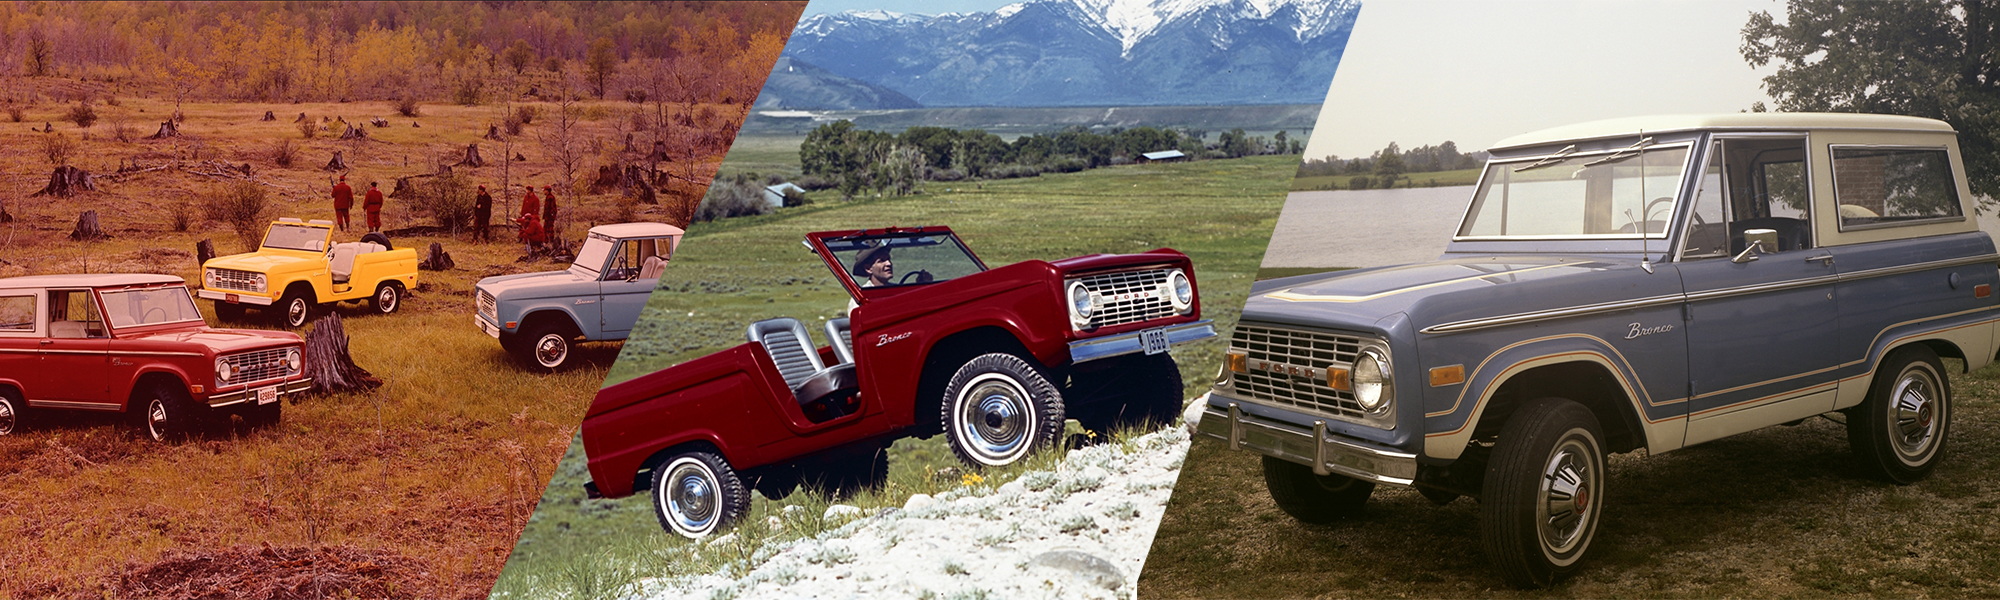 2020 Ford Bronco release